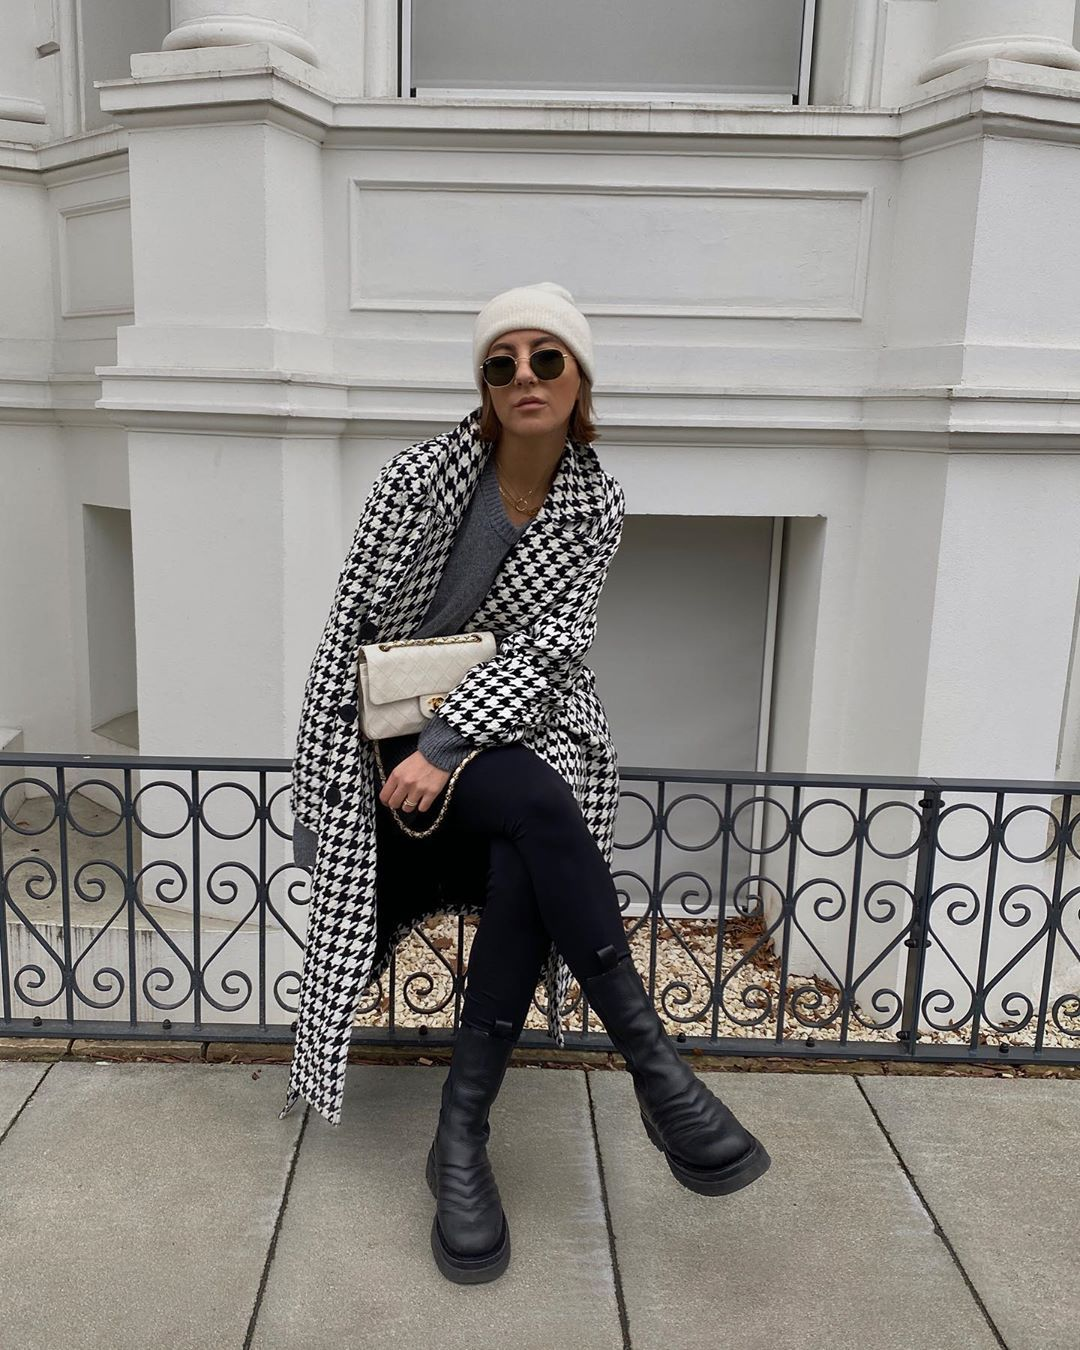 aylin-koenig-leggings-bottega-veneta-boots-instagram